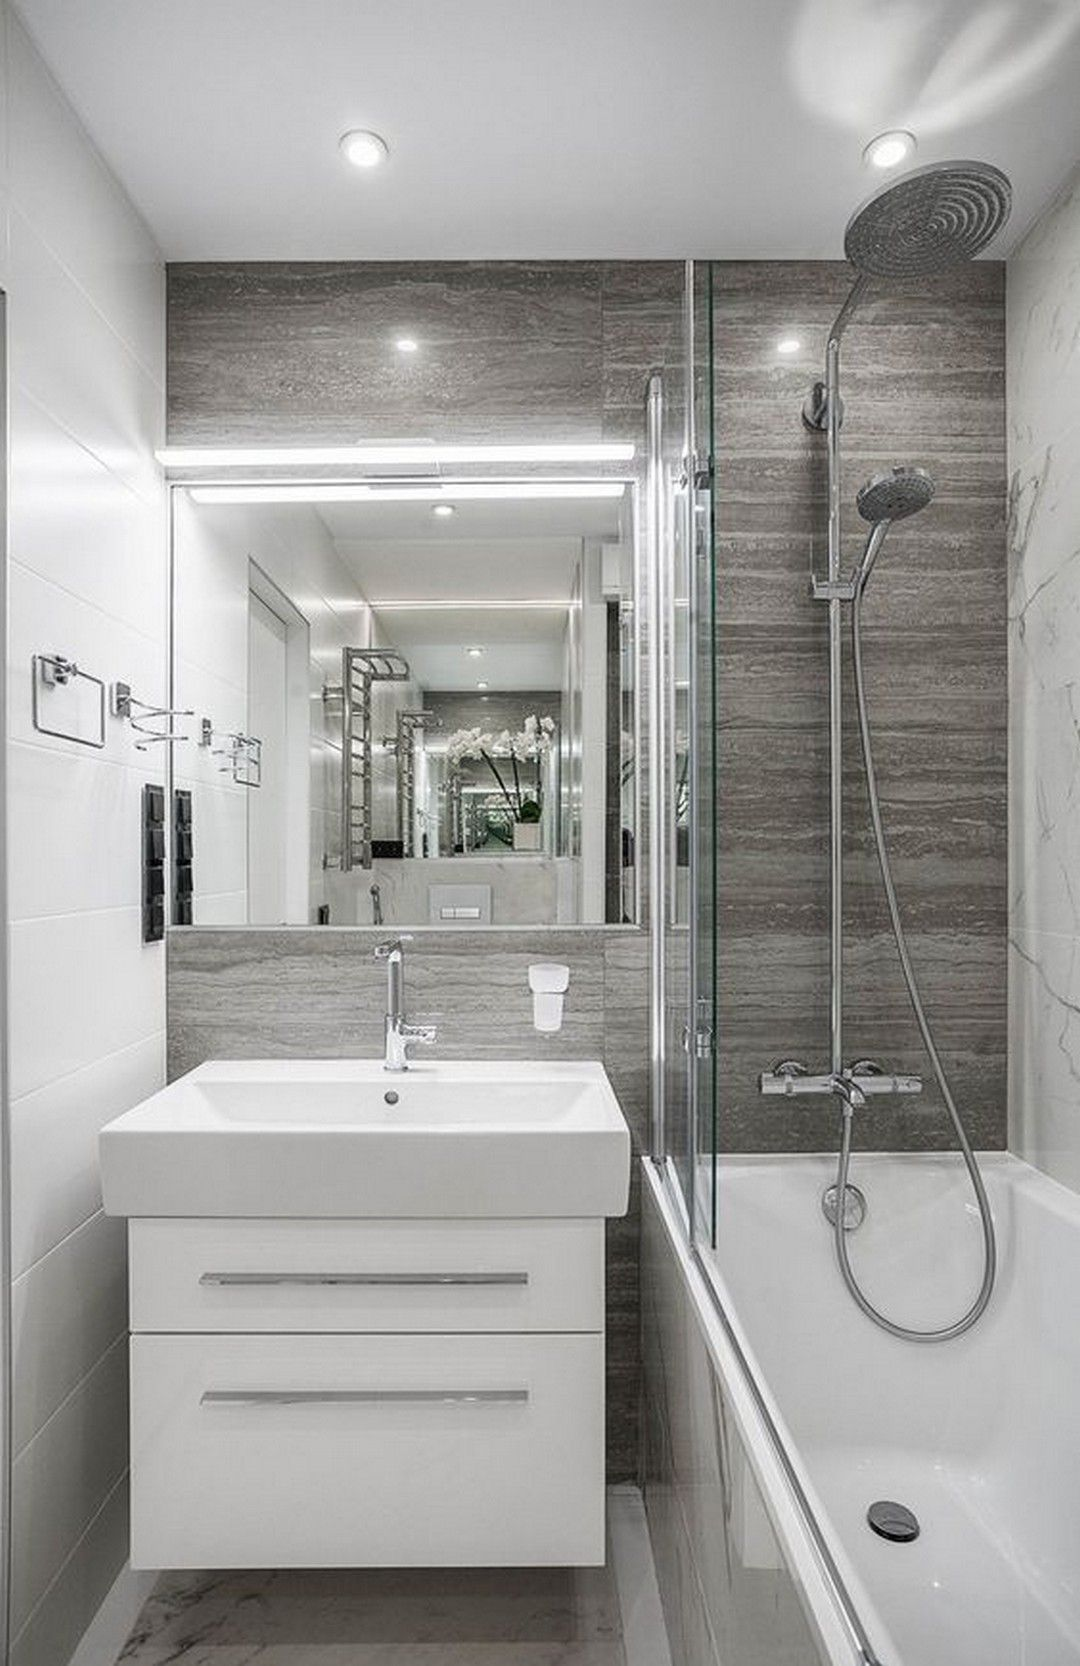 20 finest ways to remodel your bathroom on a budget on bathroom renovation ideas on a budget id=22515